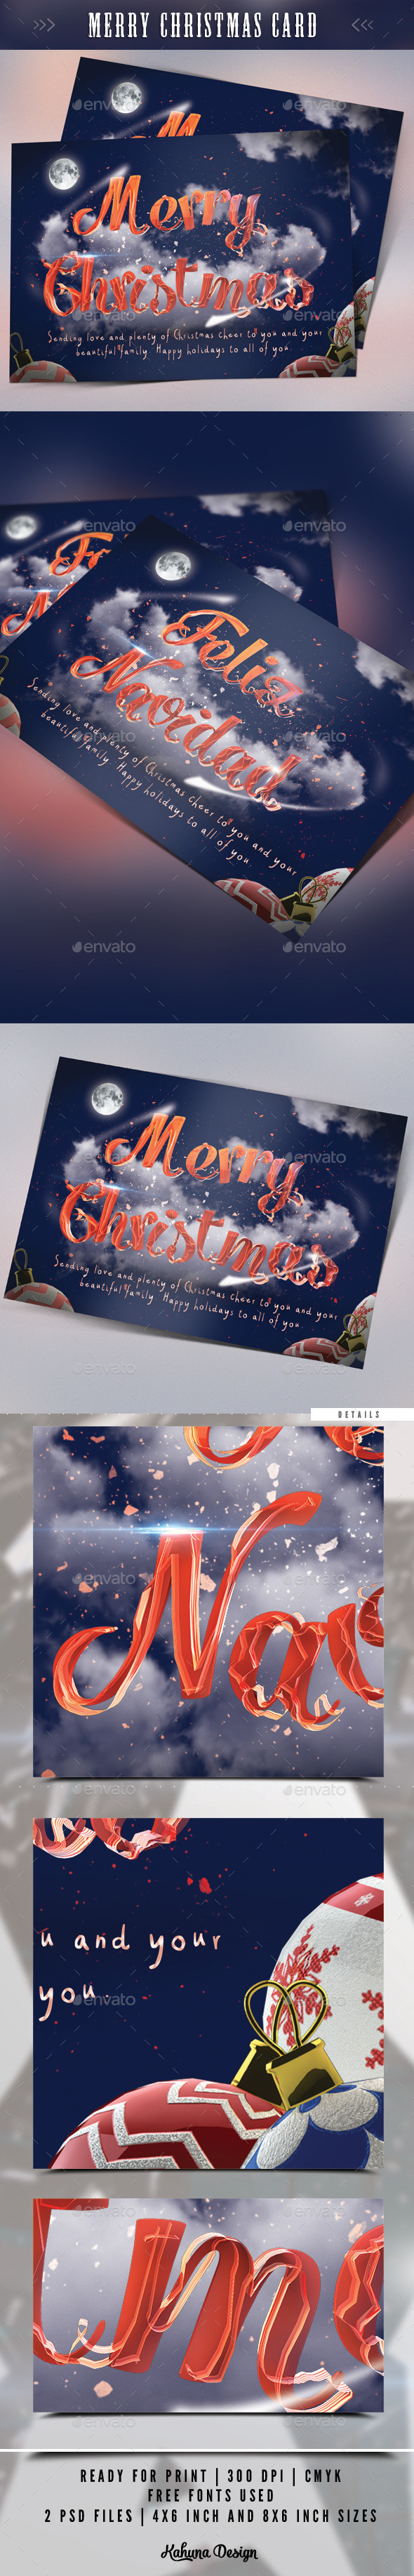 GraphicRiver Merry Christmas Card 9324059